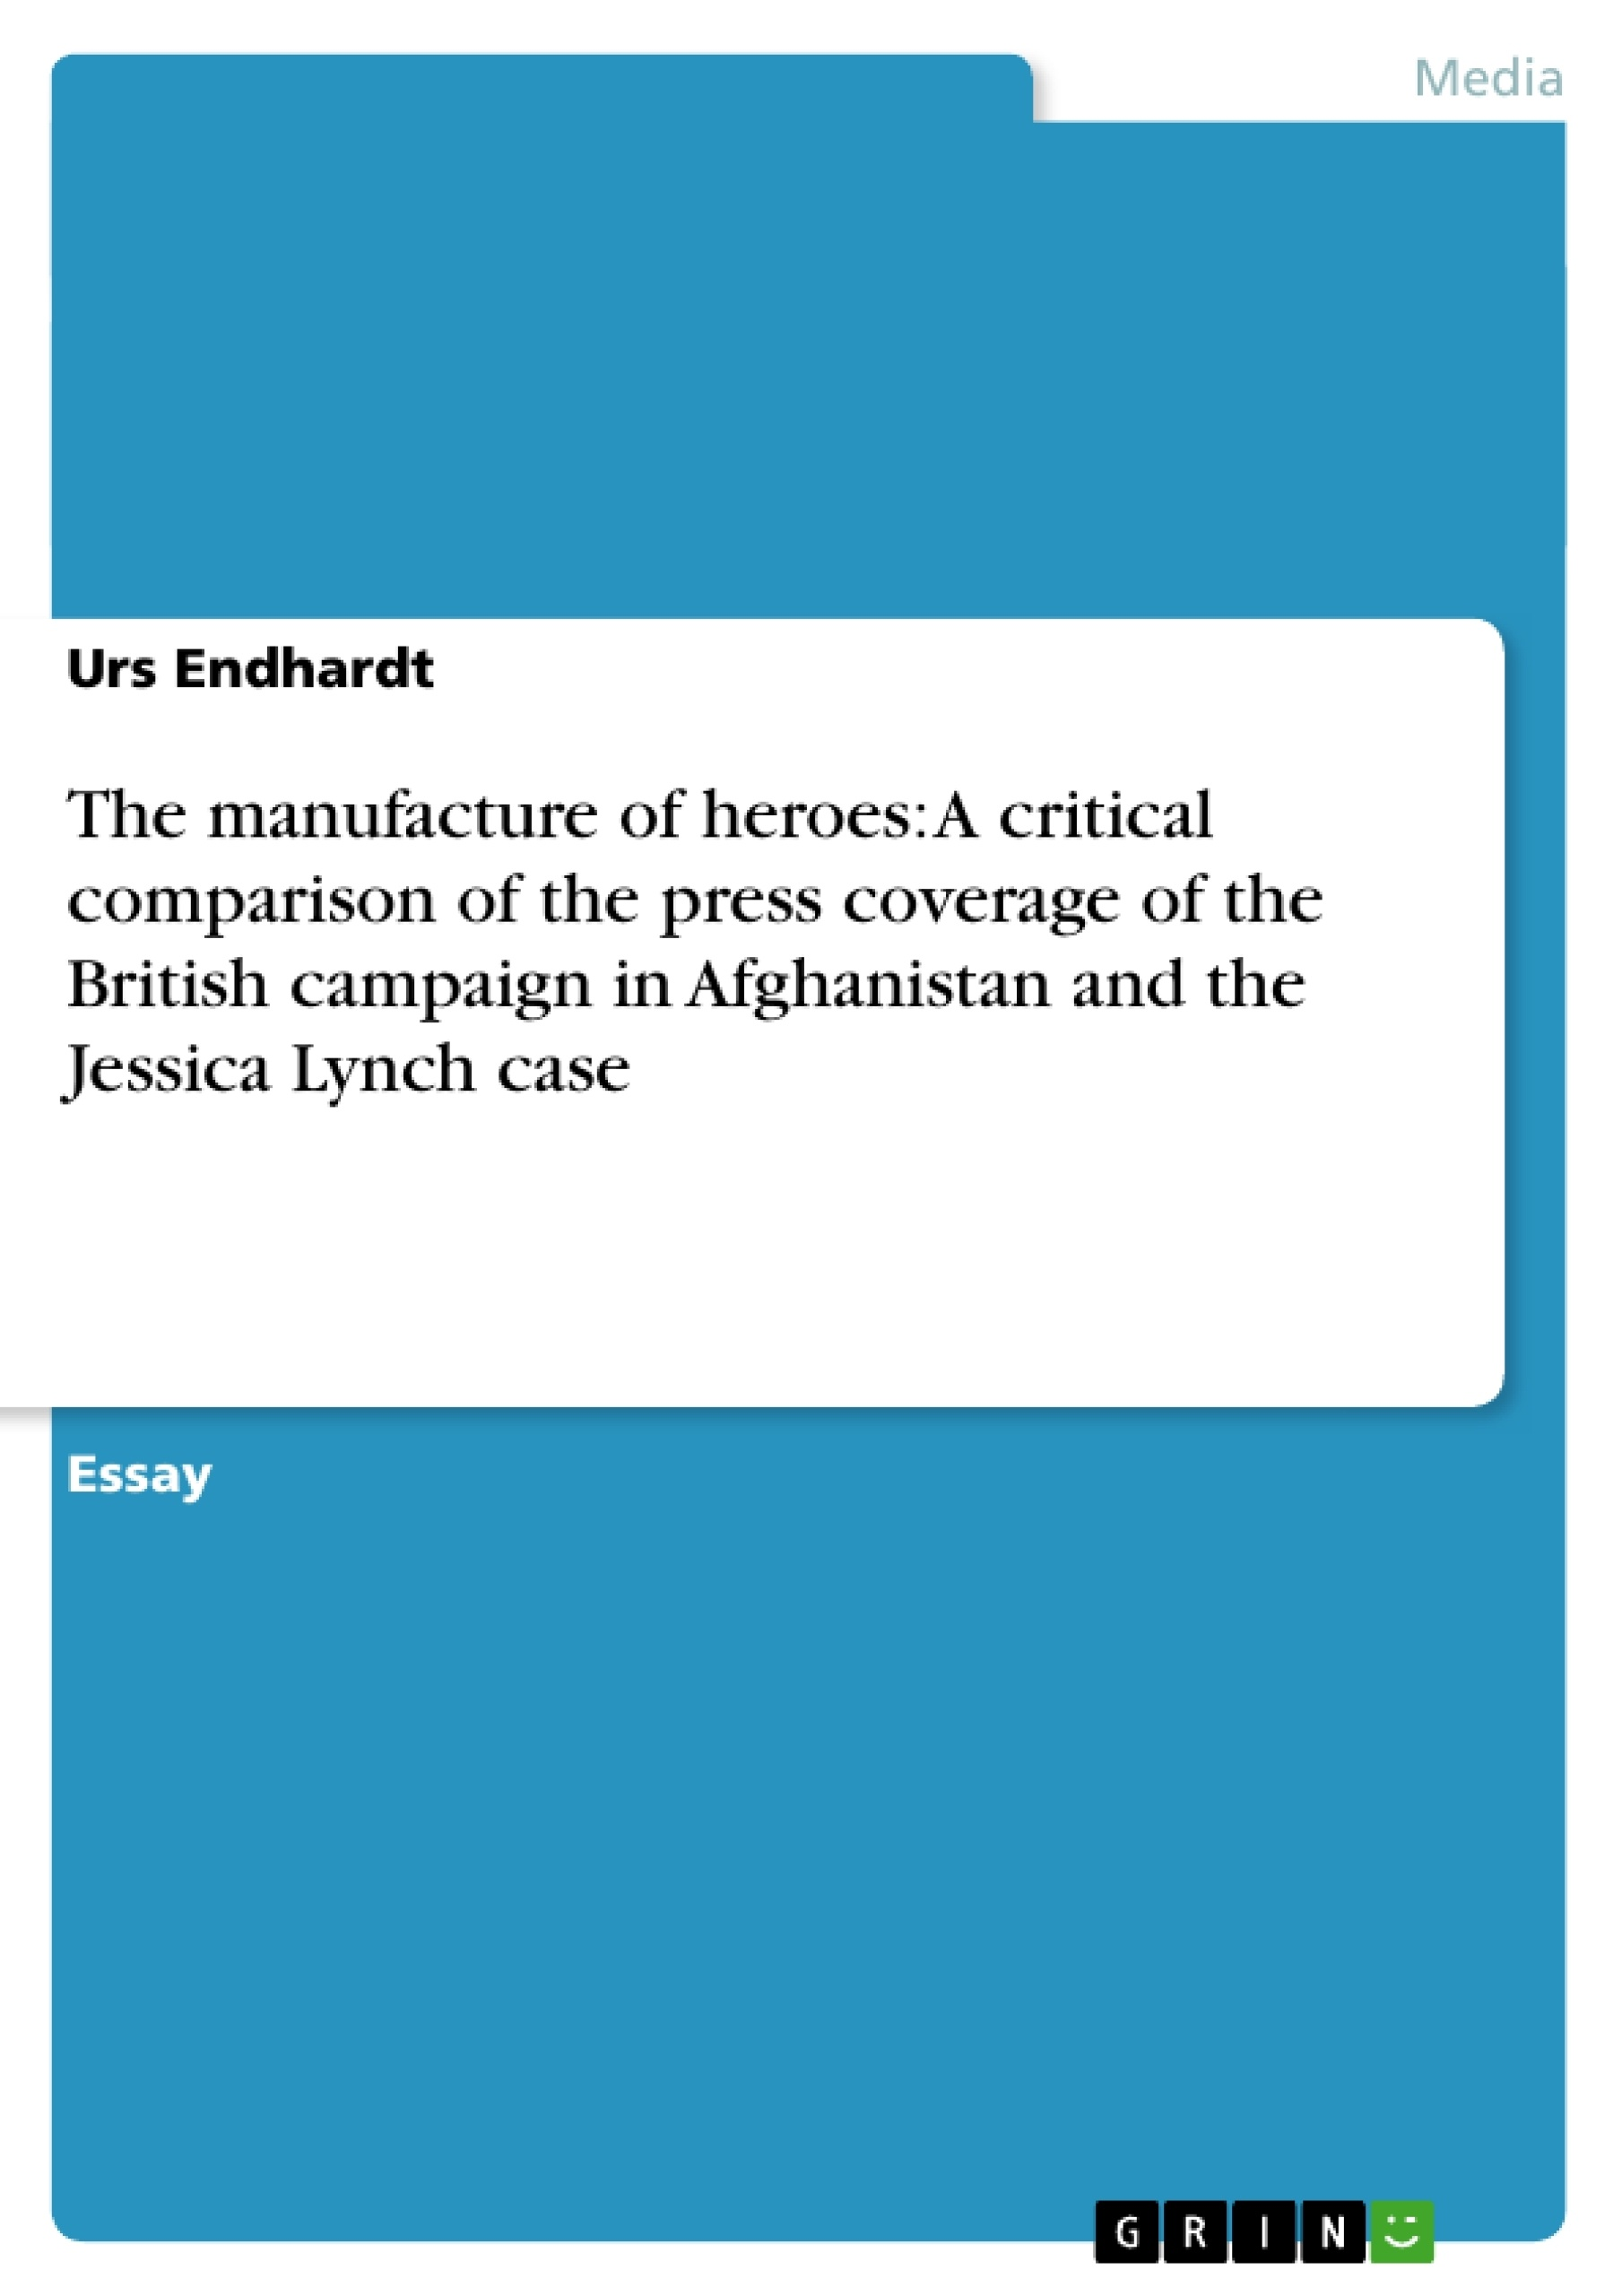 Title: The manufacture of heroes: A critical comparison of the press coverage of the British campaign in Afghanistan and the Jessica Lynch case